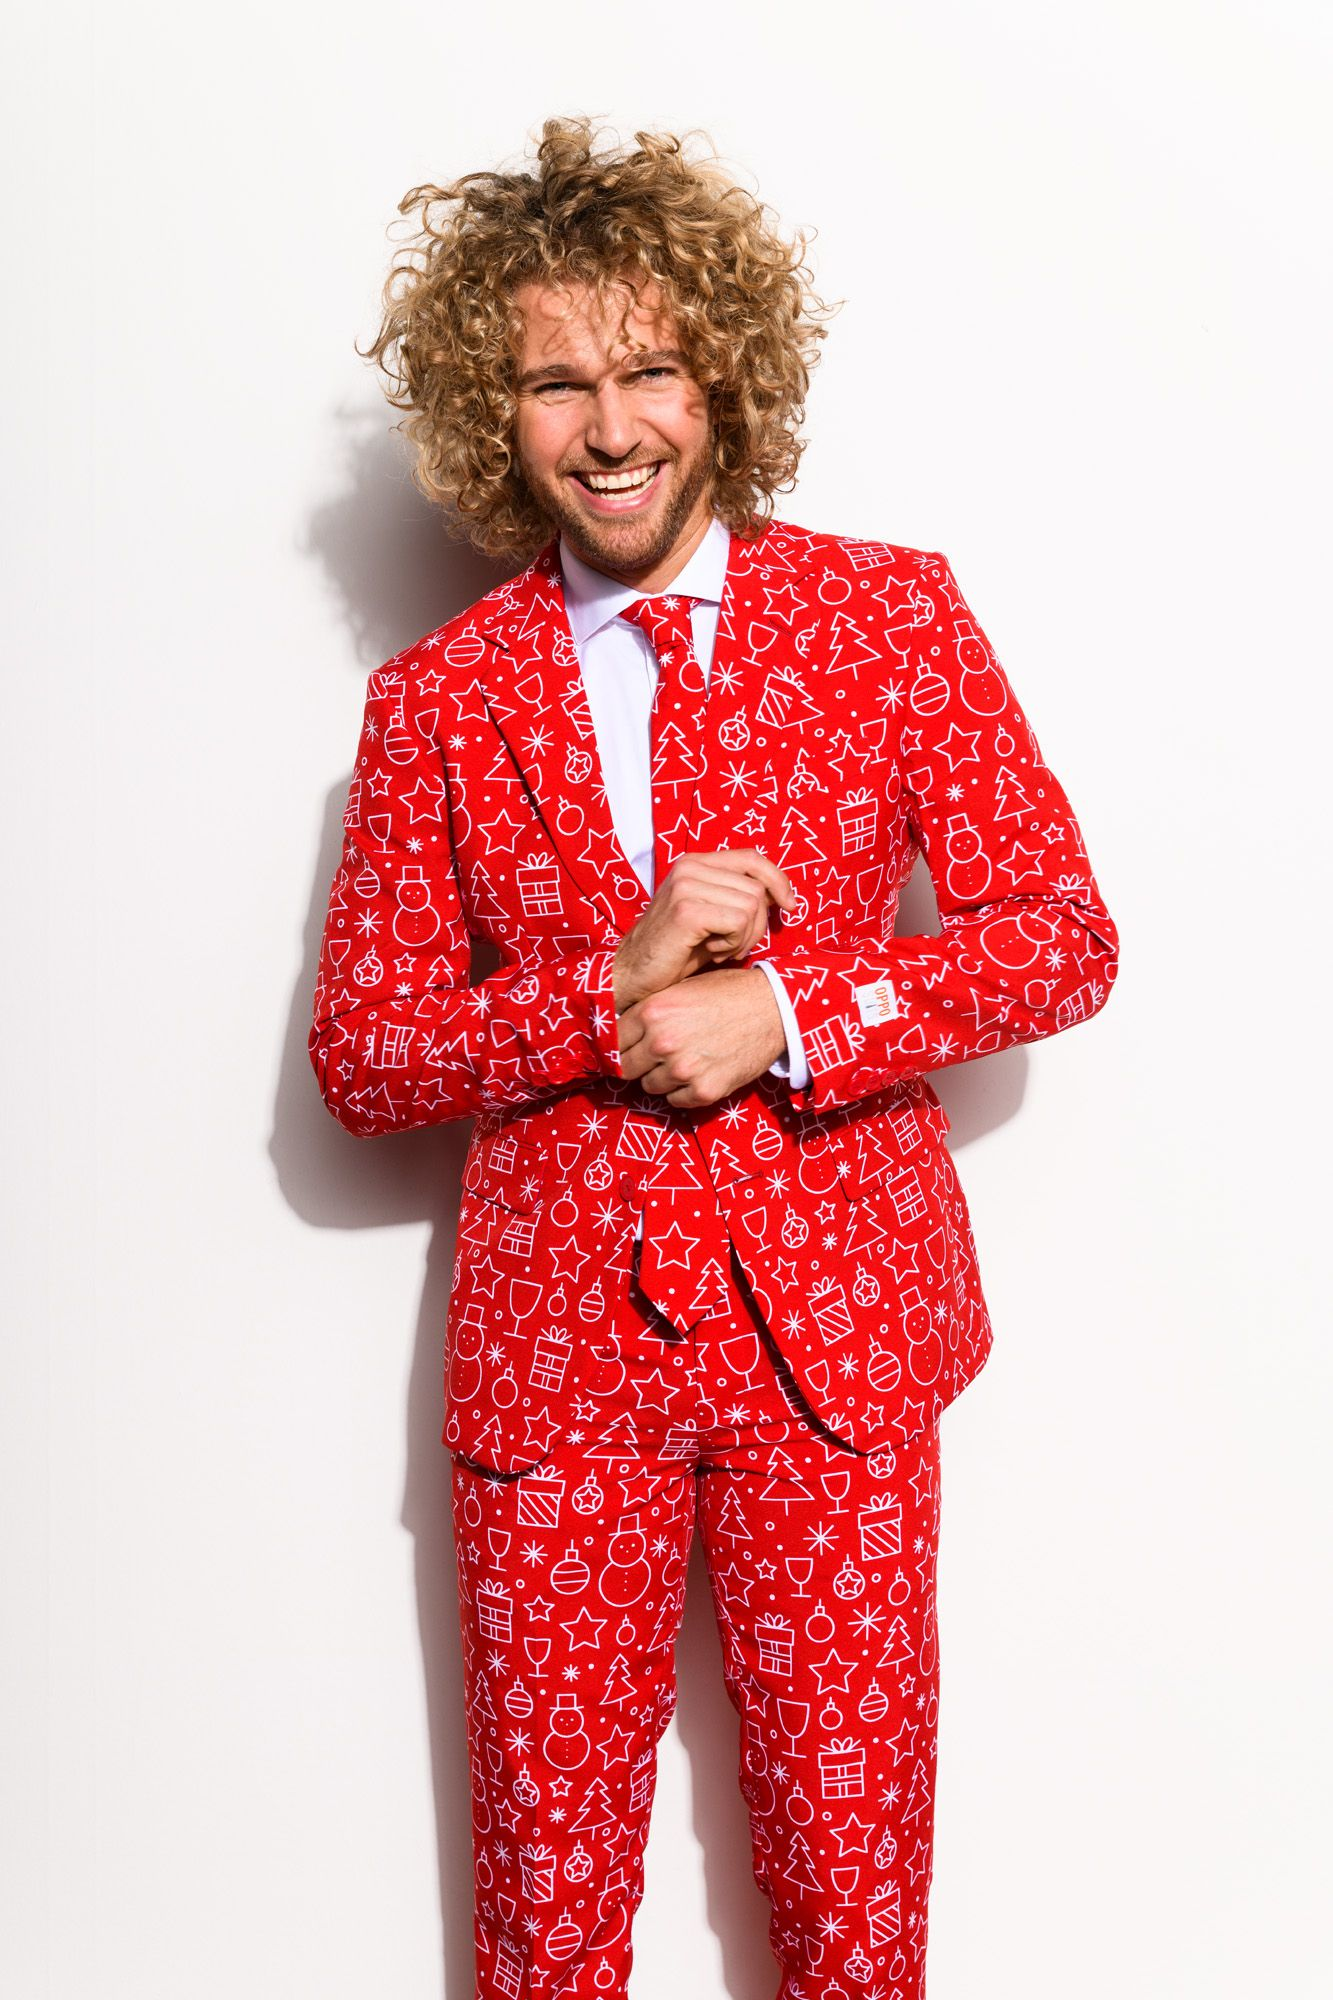 b62f04985 Festive suits for the Christmas season. Available in sixteen styles ...